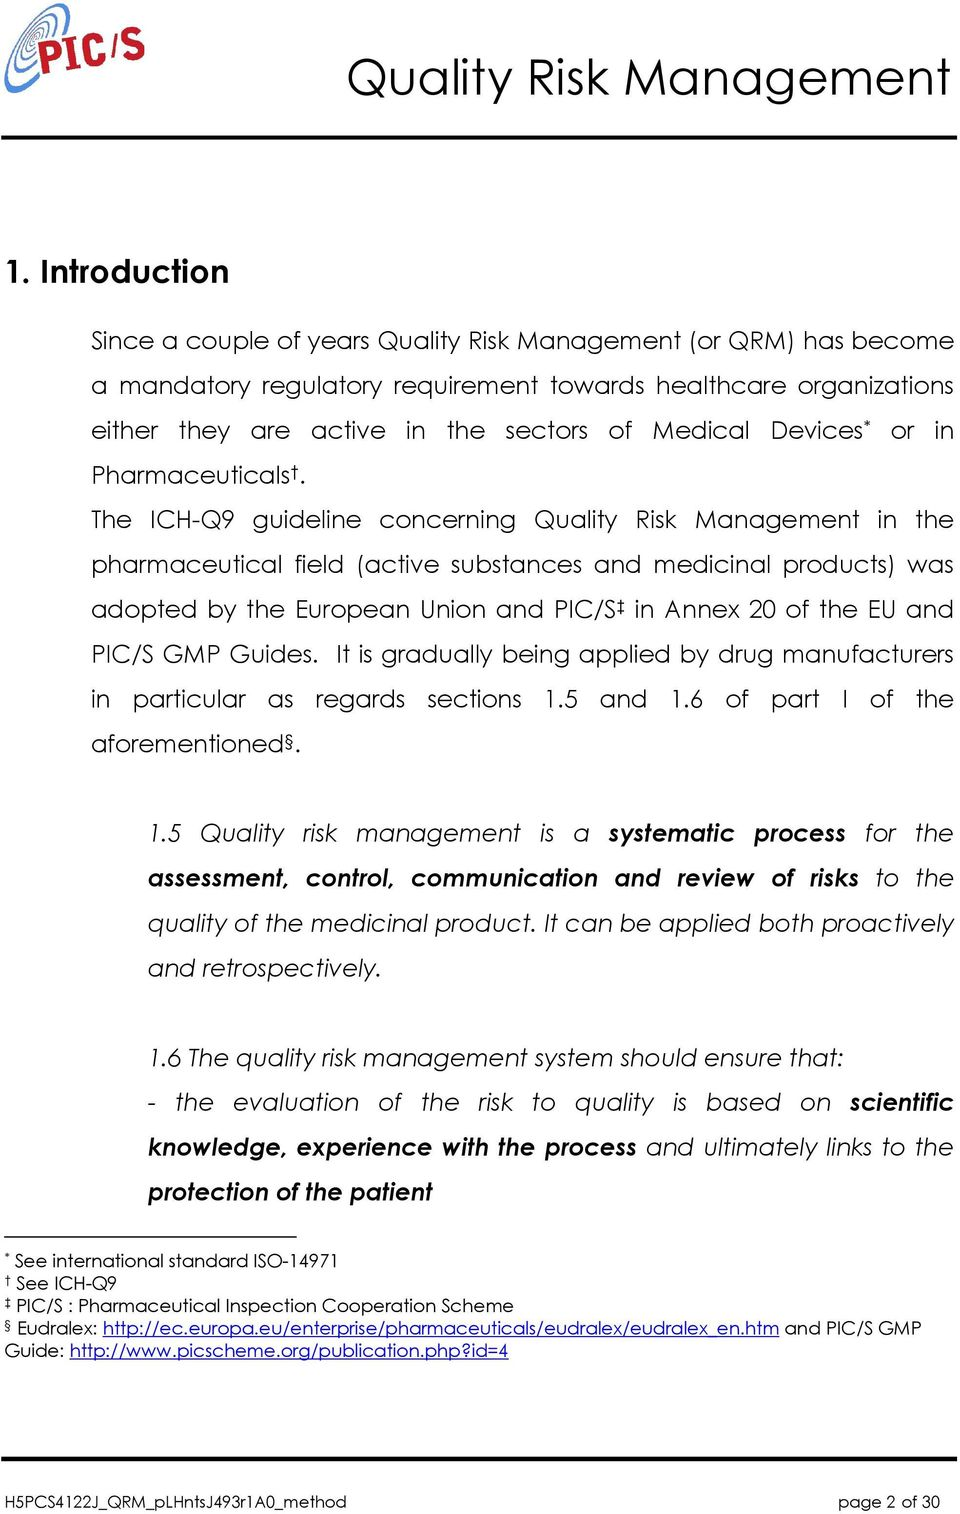 The ICH-Q9 guideline concerning Quality Risk Management in the pharmaceutical field (active substances and medicinal products) was adopted by the European Union and PIC/S in Annex 20 of the EU and